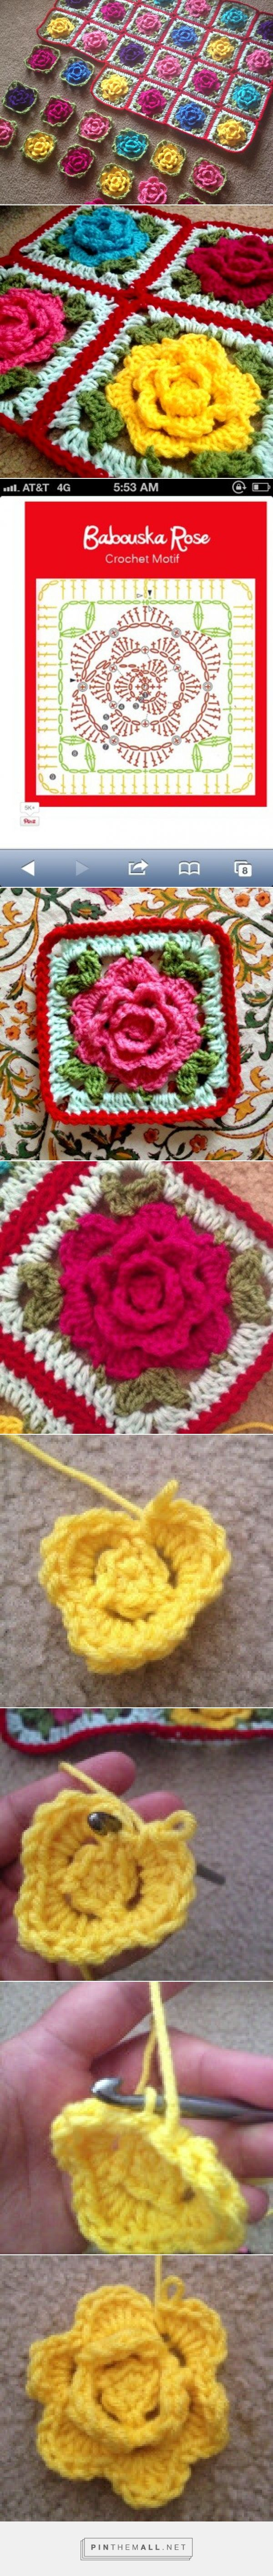 Babouska Rose Blanket Tutorial | BabyLove Brand - created via http://pinthemall.net